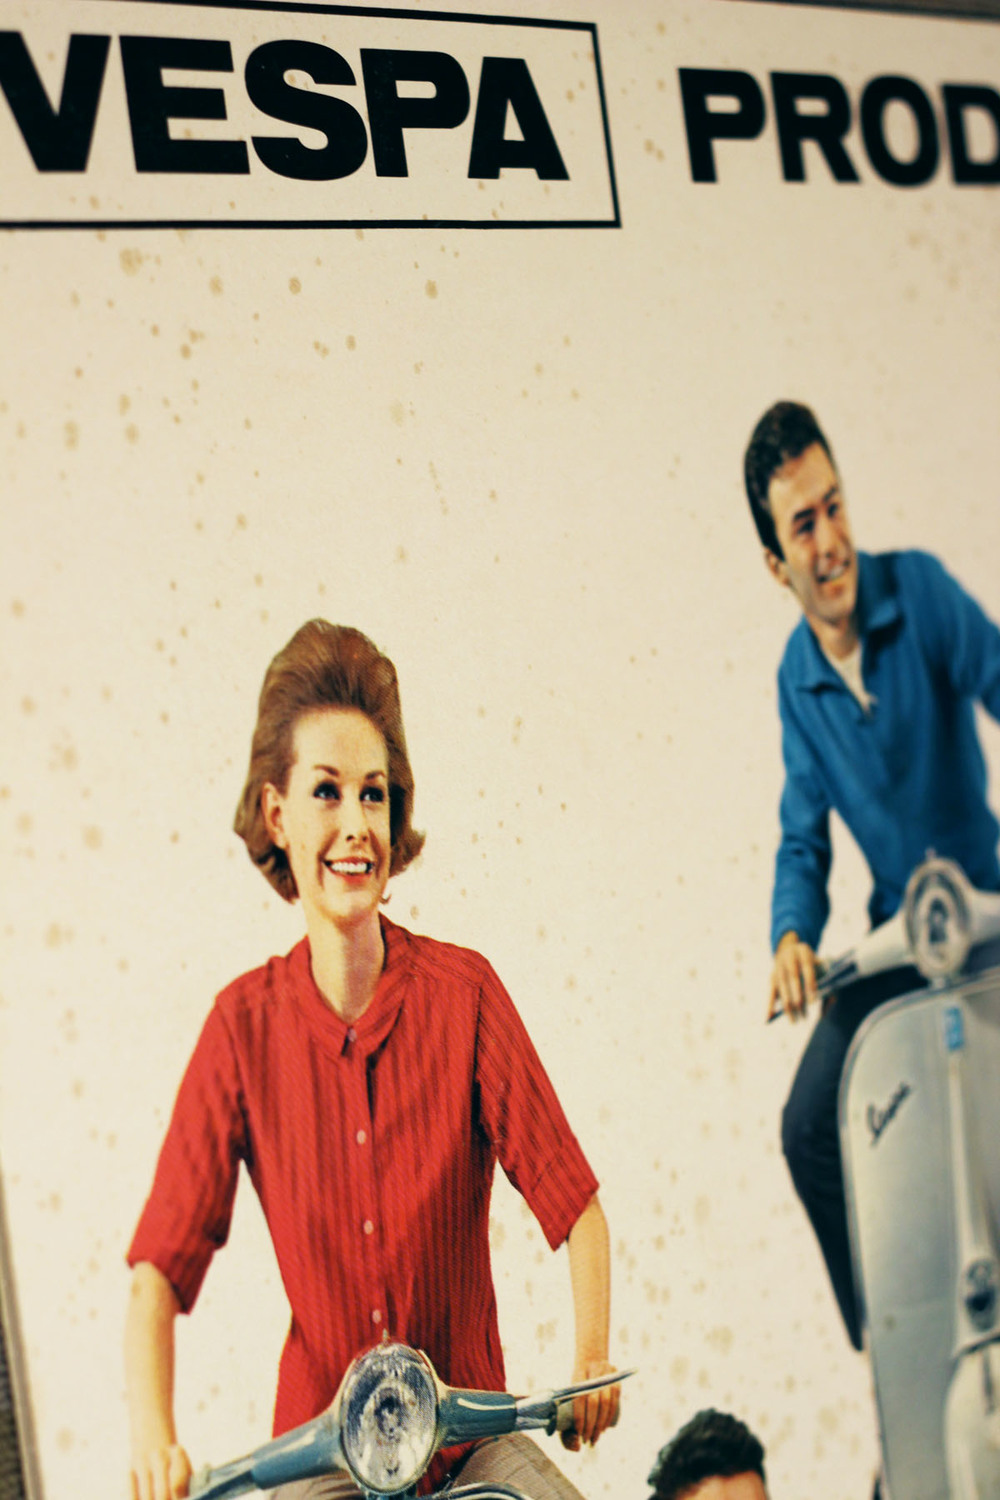 vespa poster detail of foxing.jpg